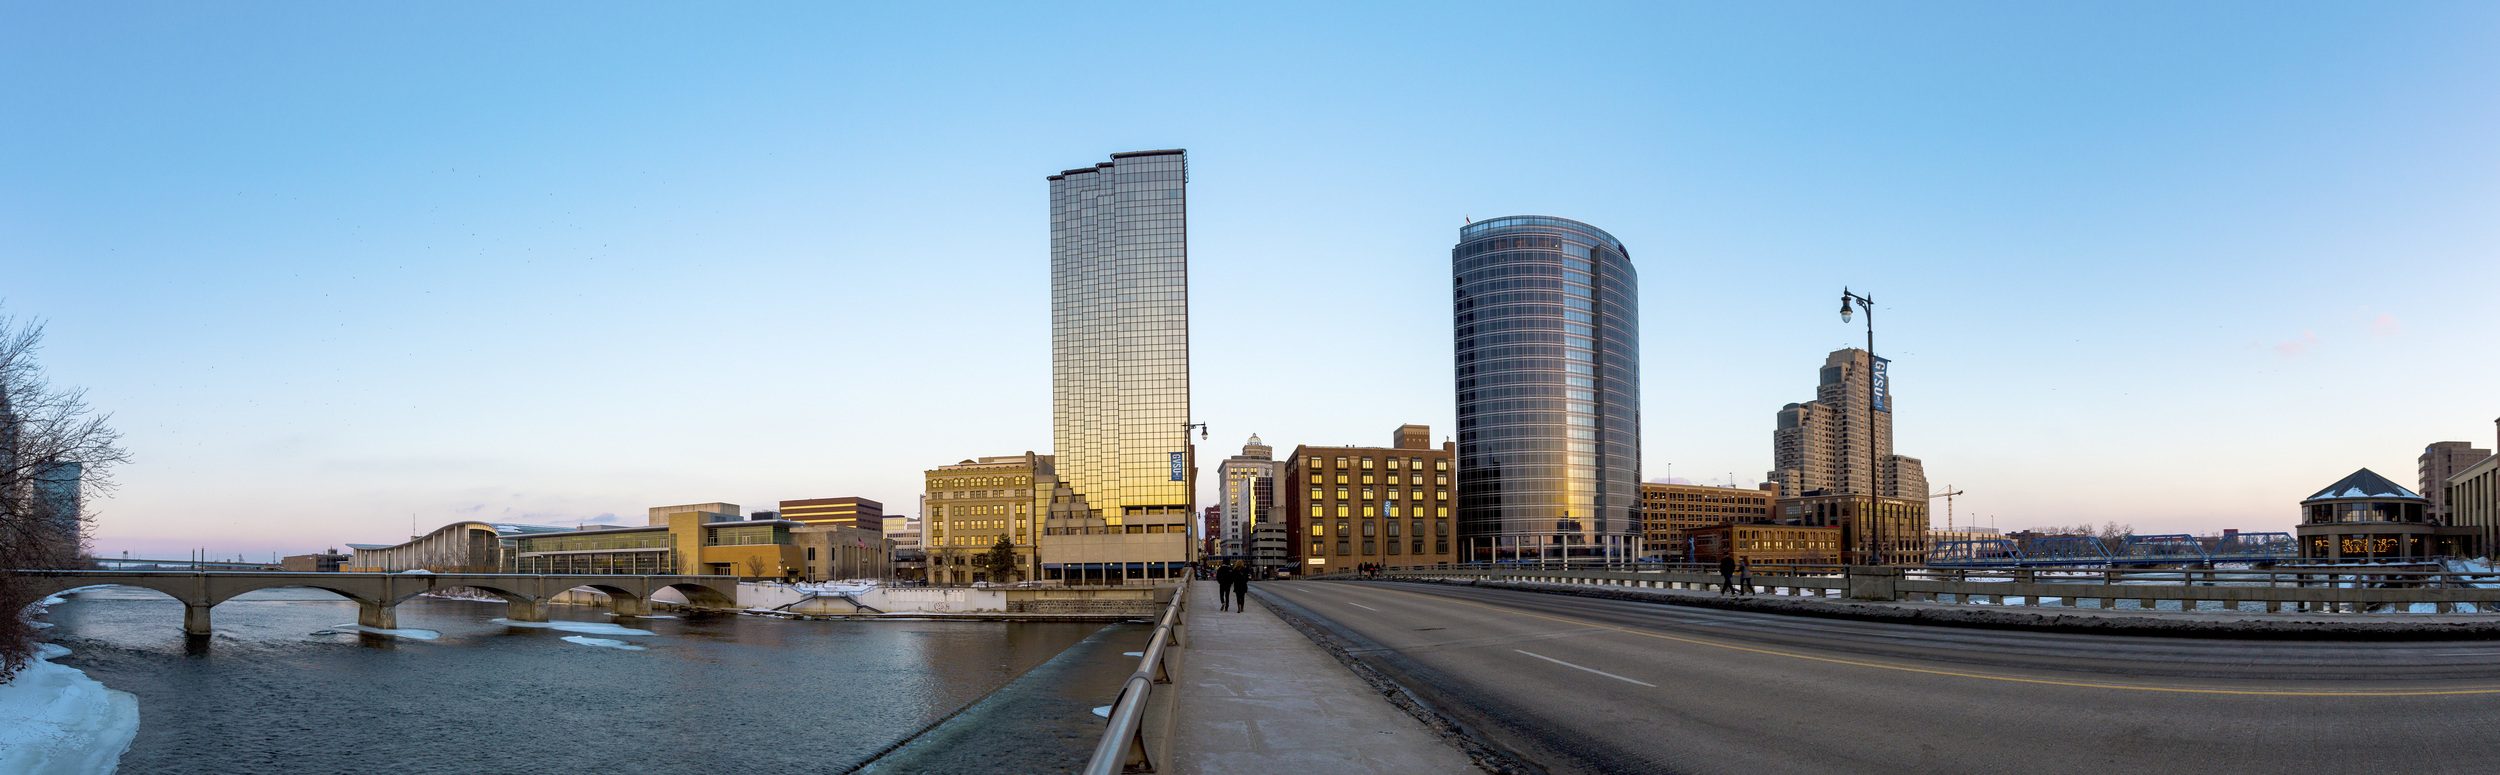 SHOOTING WIDE: This image is the completed panorama I shot during a trip to downtown Grand Rapids, Mich. The image is composed of four shots that were stitched together in Photoshop.